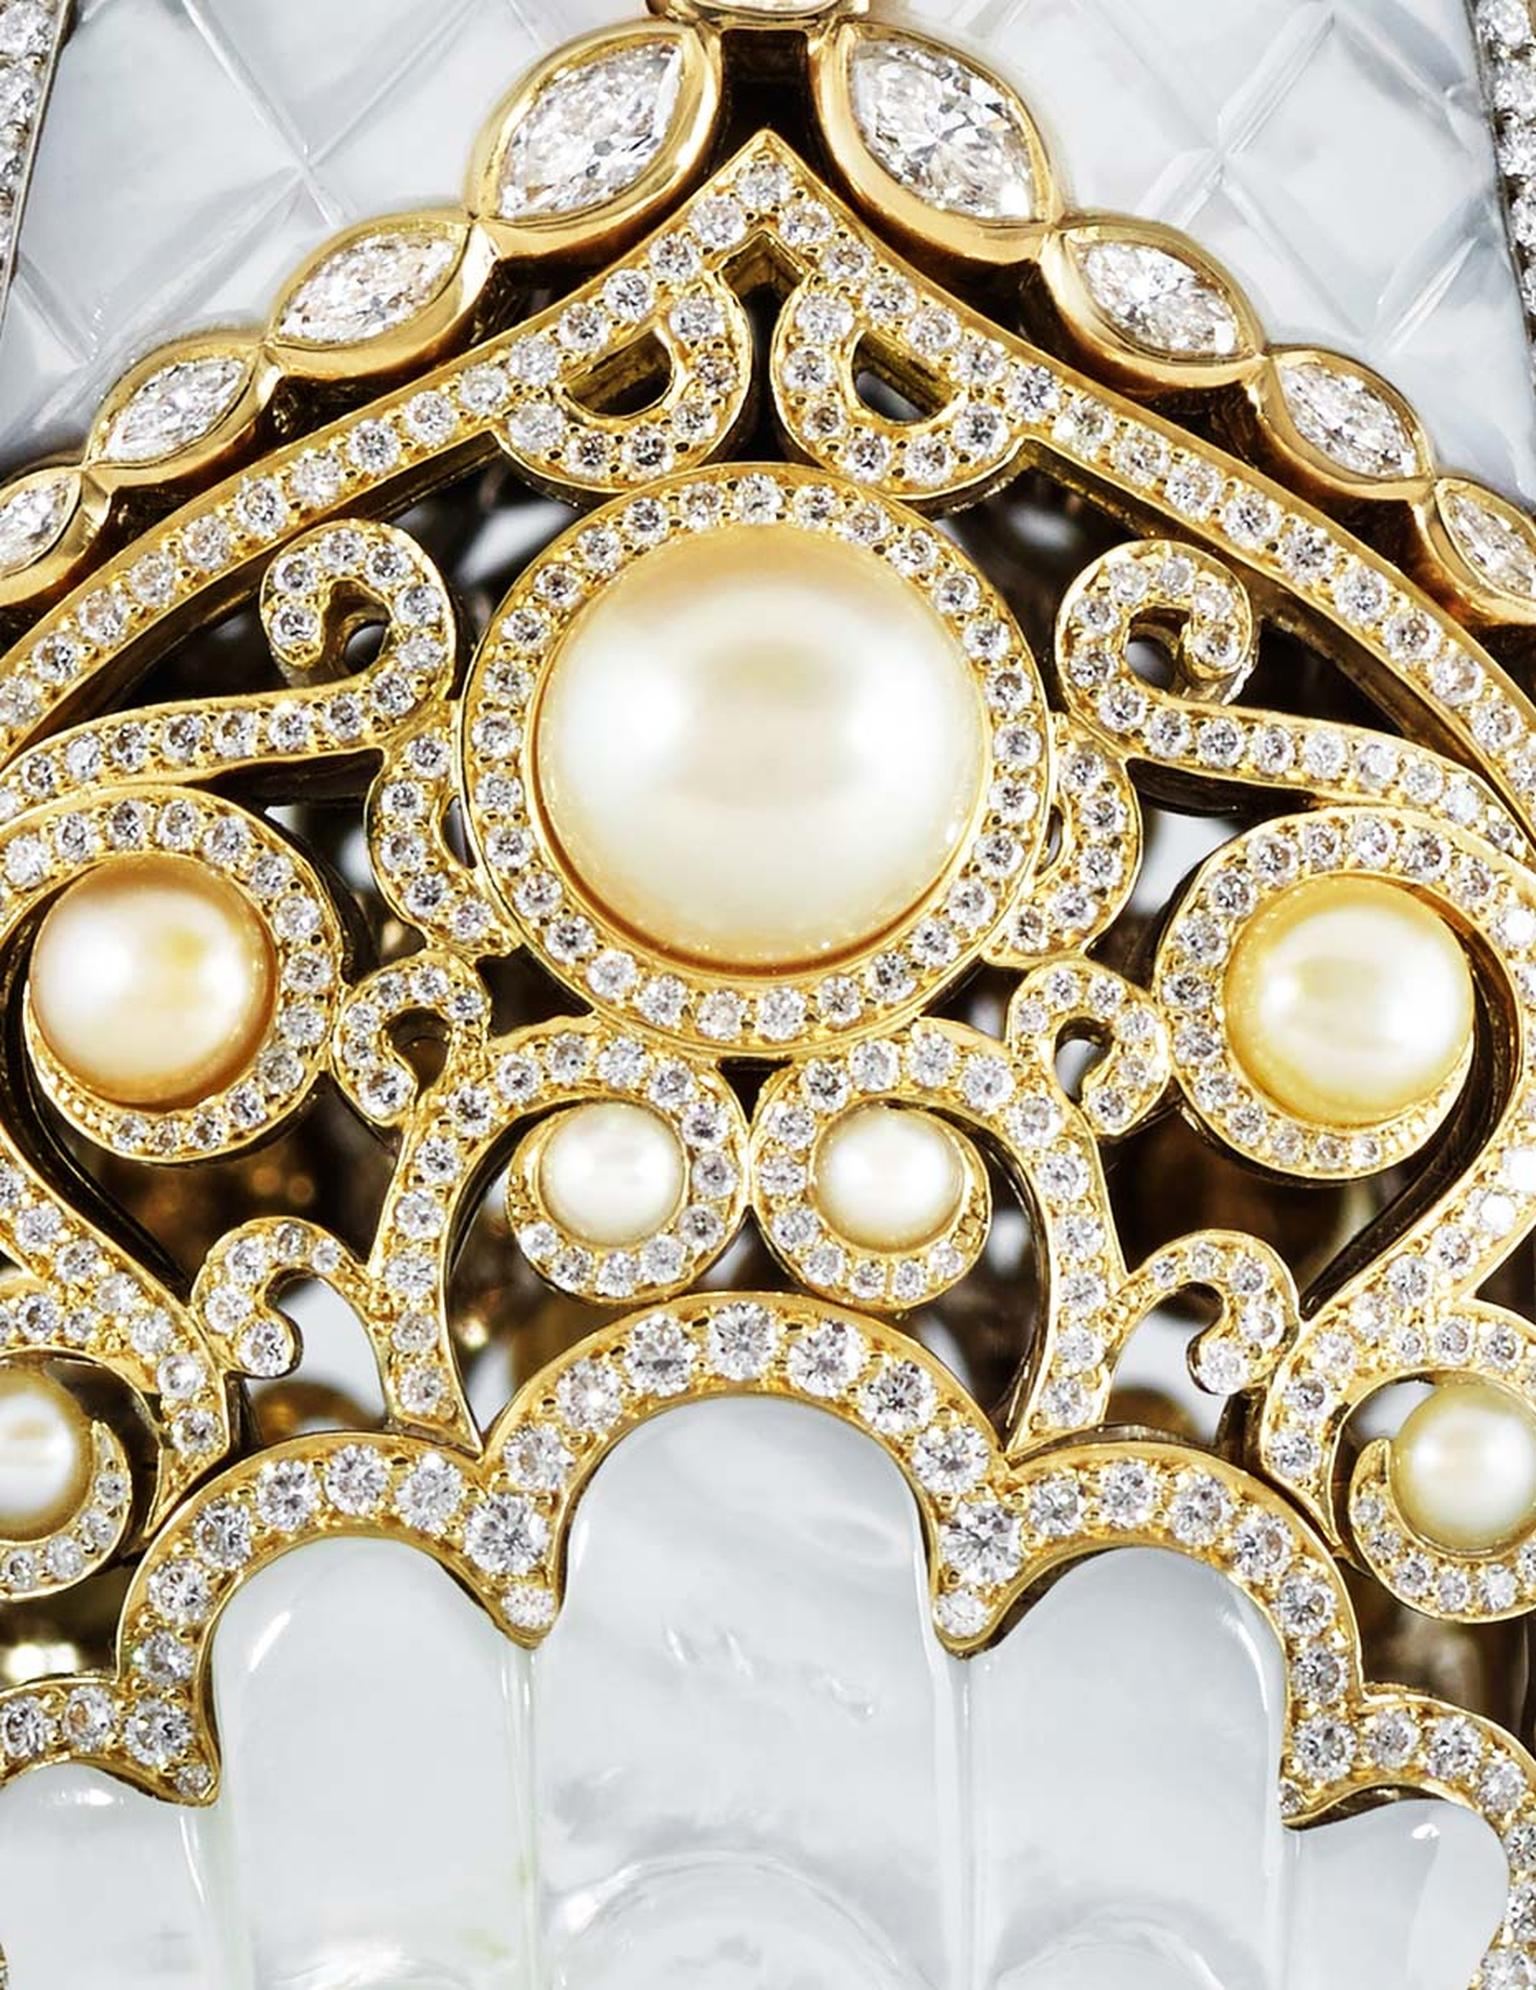 The Fabergé Pearl Egg, which was unveiled at the DJWE, draws inspiration from the formation of a pearl within an oyster. The egg's painstakingly crafted, mother-of-pearl exterior opens to reveal a unique grey pearl, sourced from the Arabian Gulf.